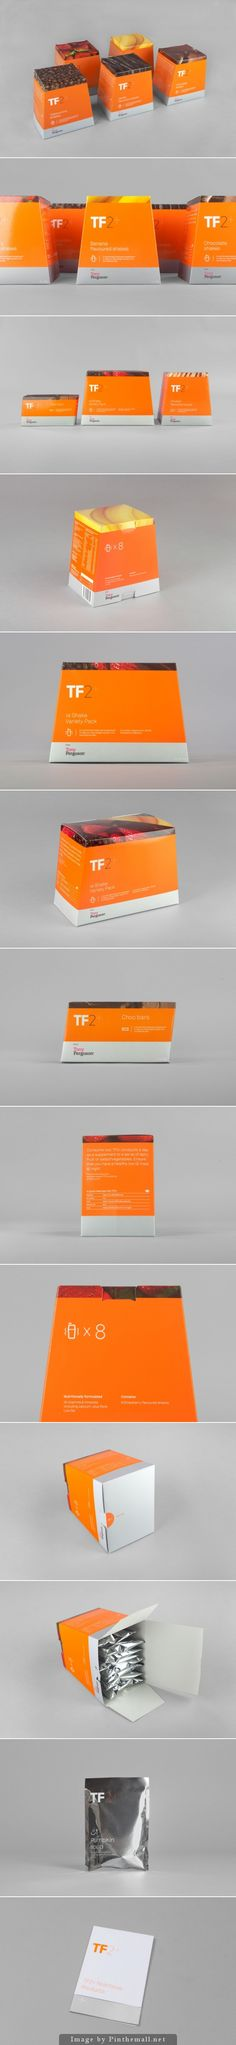 TF2 by Maud for the 'do it yourself' weight loss category #packaging curated by Packaging Diva PD created via http://retaildesignblog.net/2013/11/12/tf2-branding-by-maud/